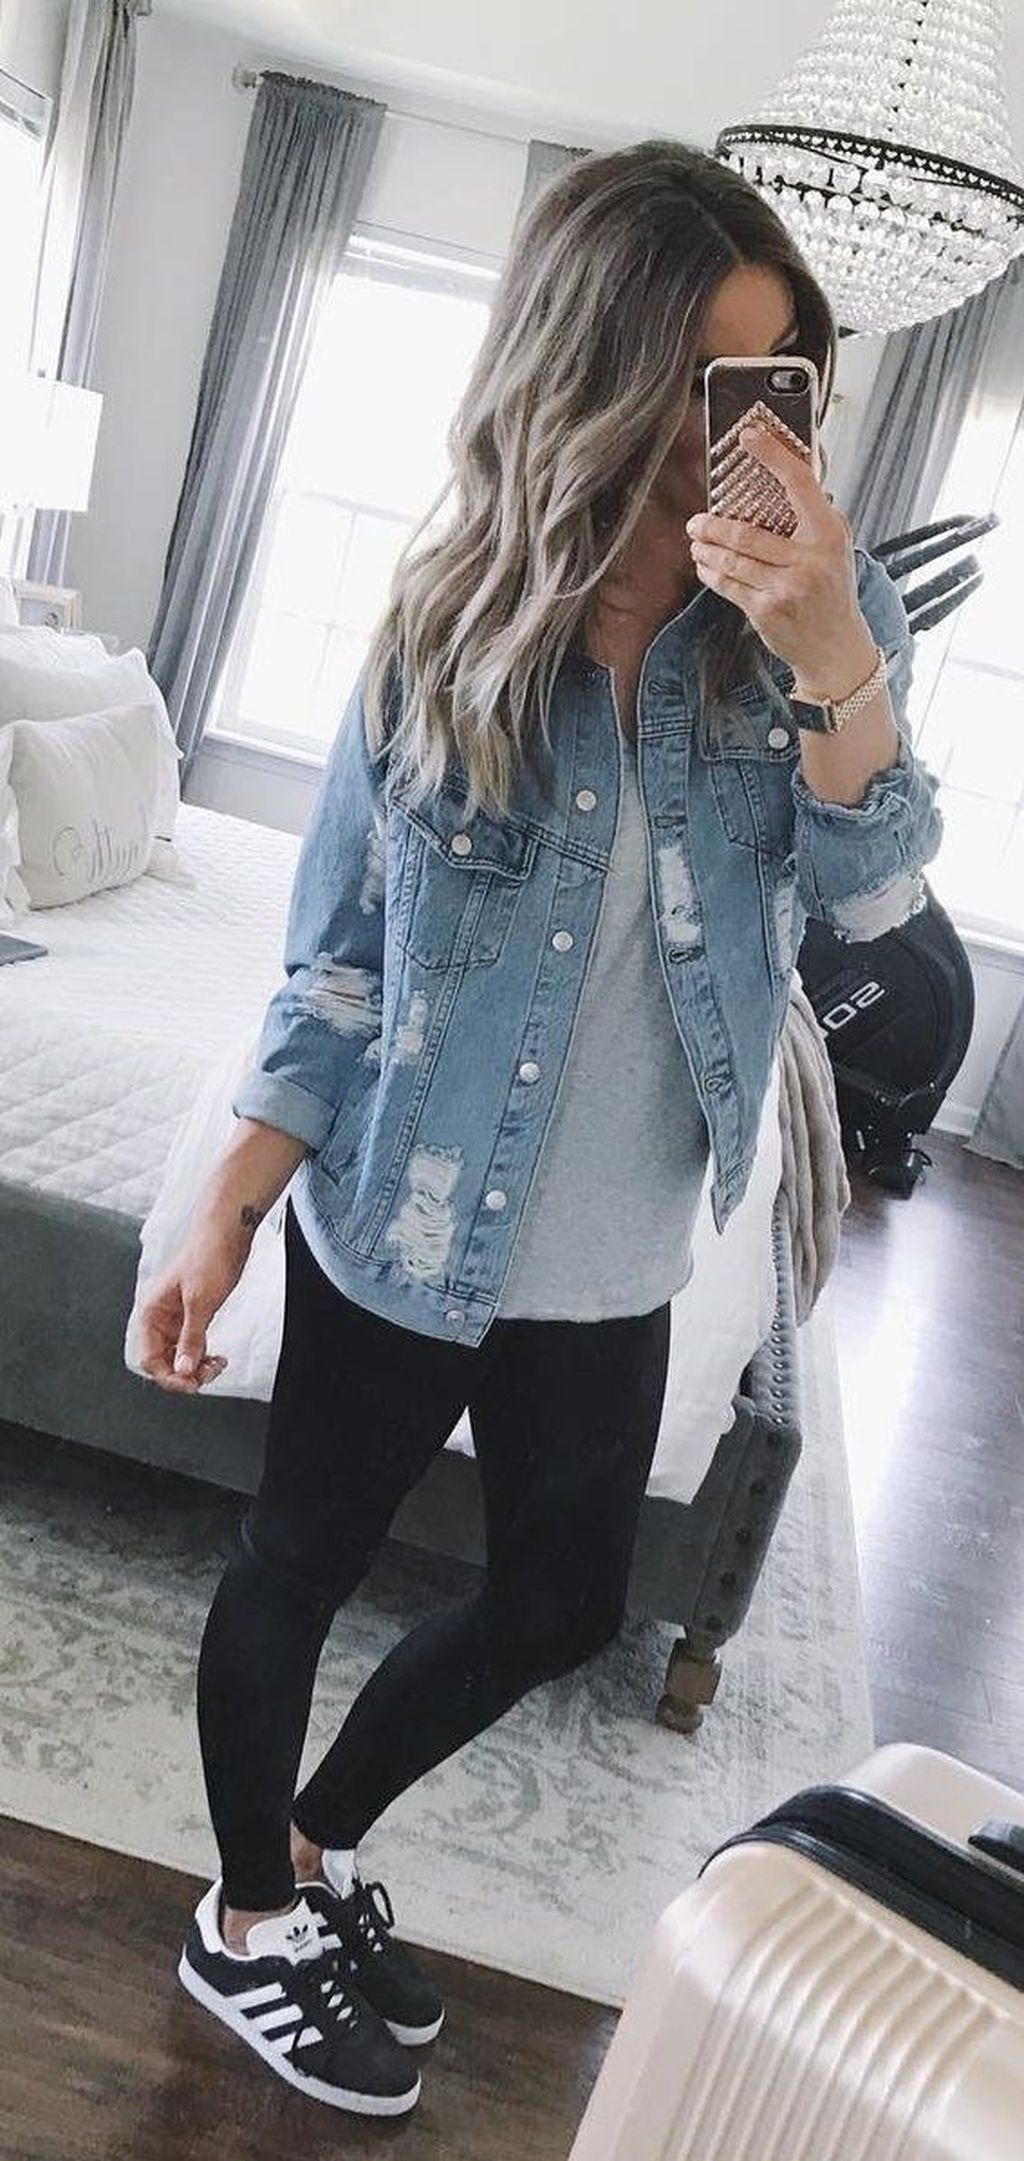 Awesome 40 Awesome Winter Outfits Ideas With Denim Jacket More At Http Trendwear4you Com Preppy Outfits Winter Outfit Trends Casual Summer Outfits For Women